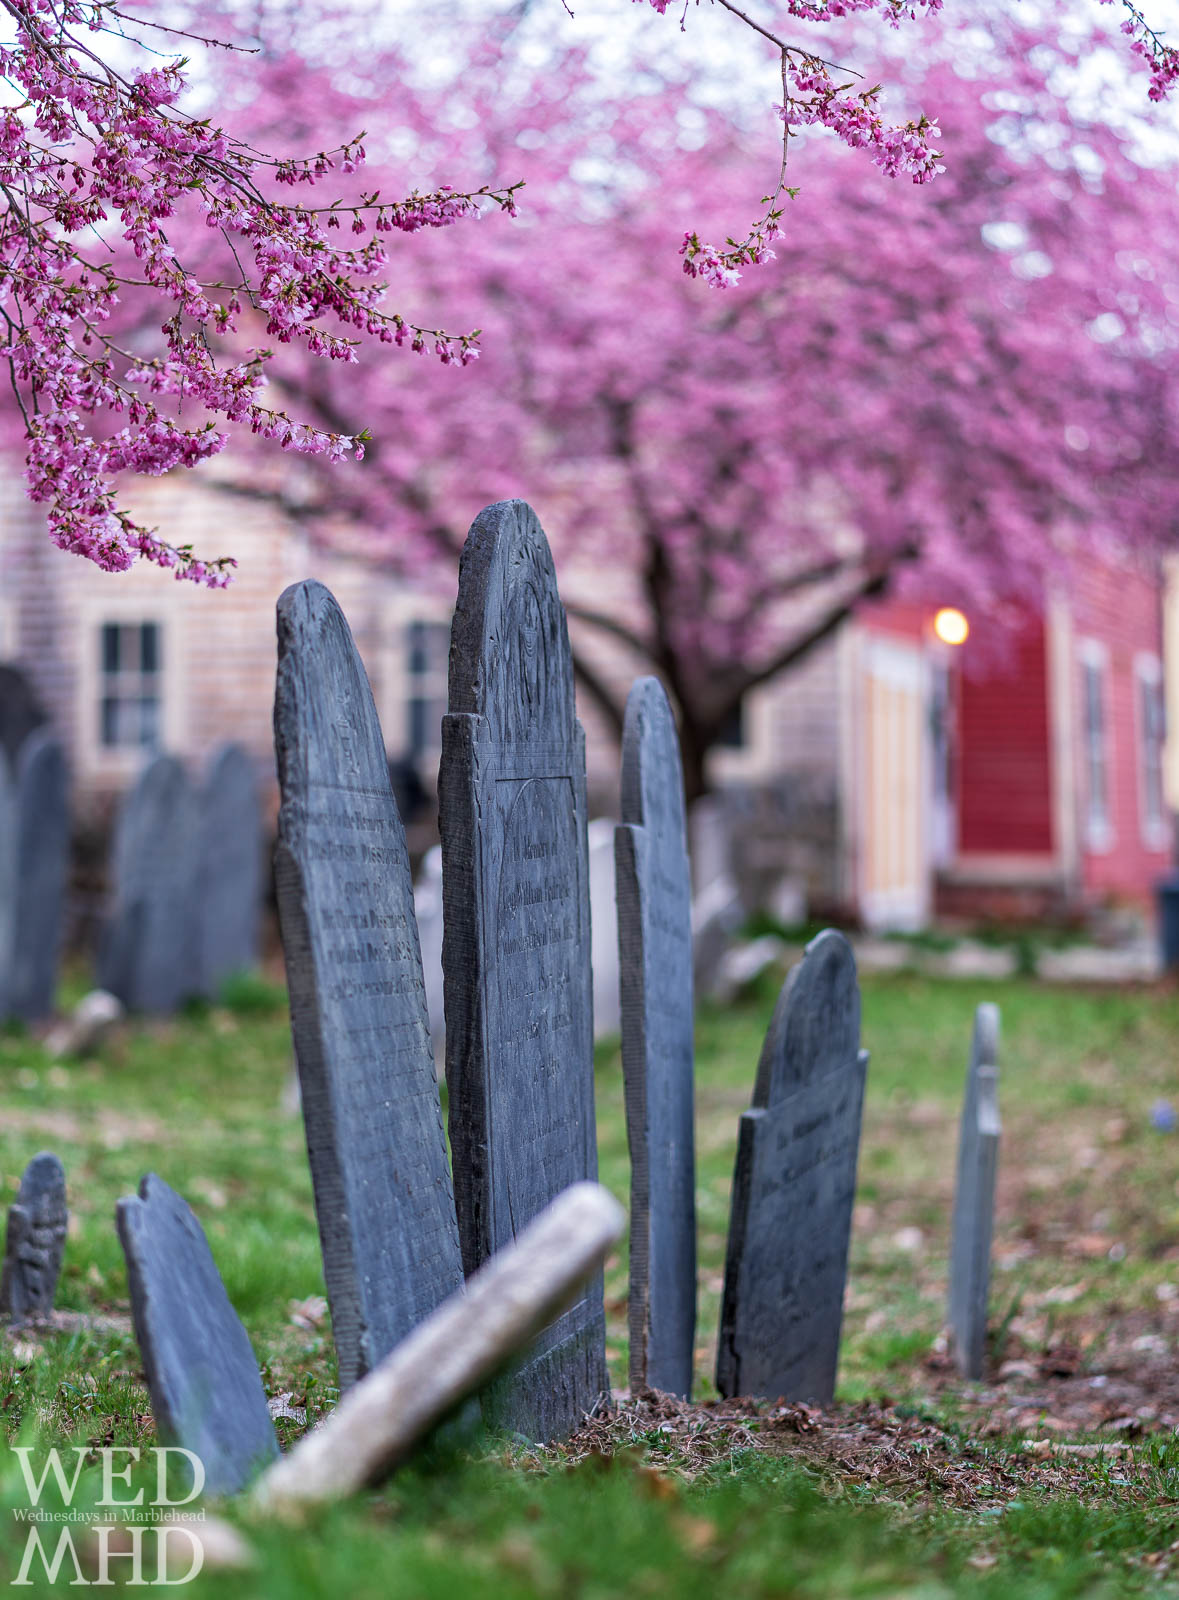 After a several year hiatus peak cherry blossoms have returned to the Harris Street Cemetery in Marblehead